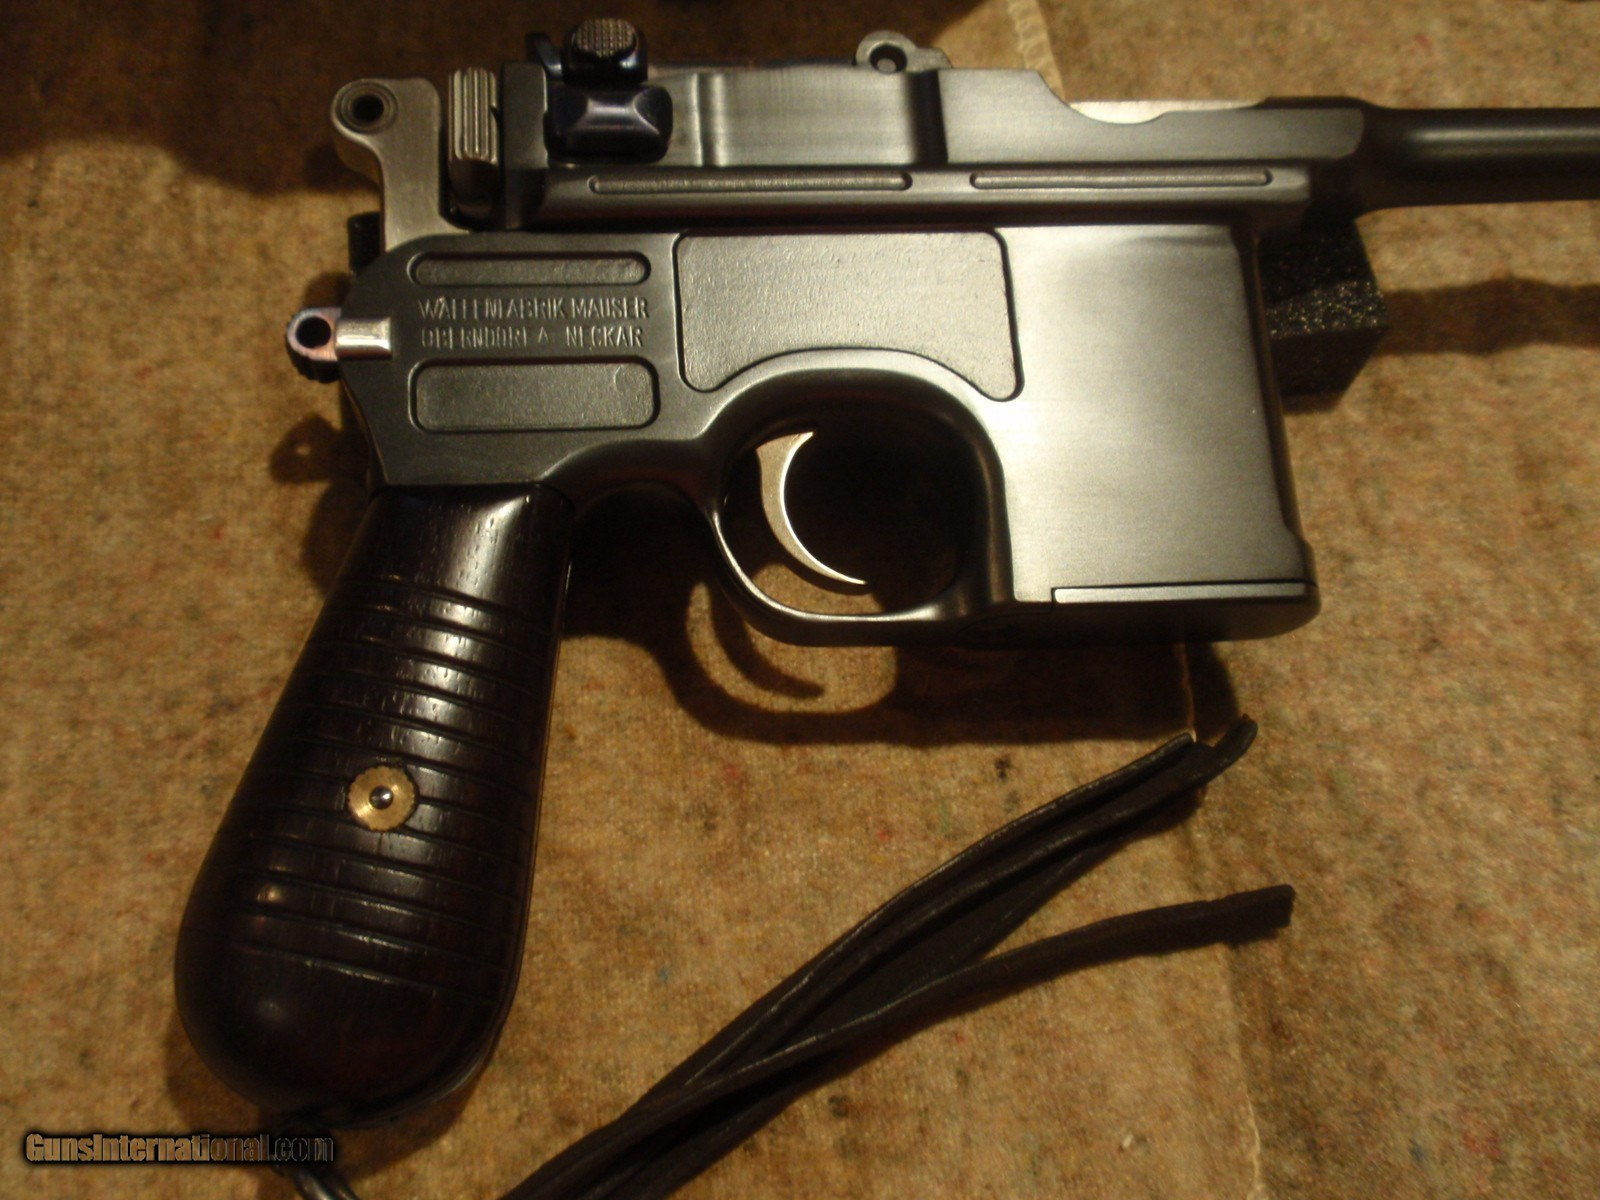 c96 broomhandle mauser 9mm 180mmbbl presentation engraved extra